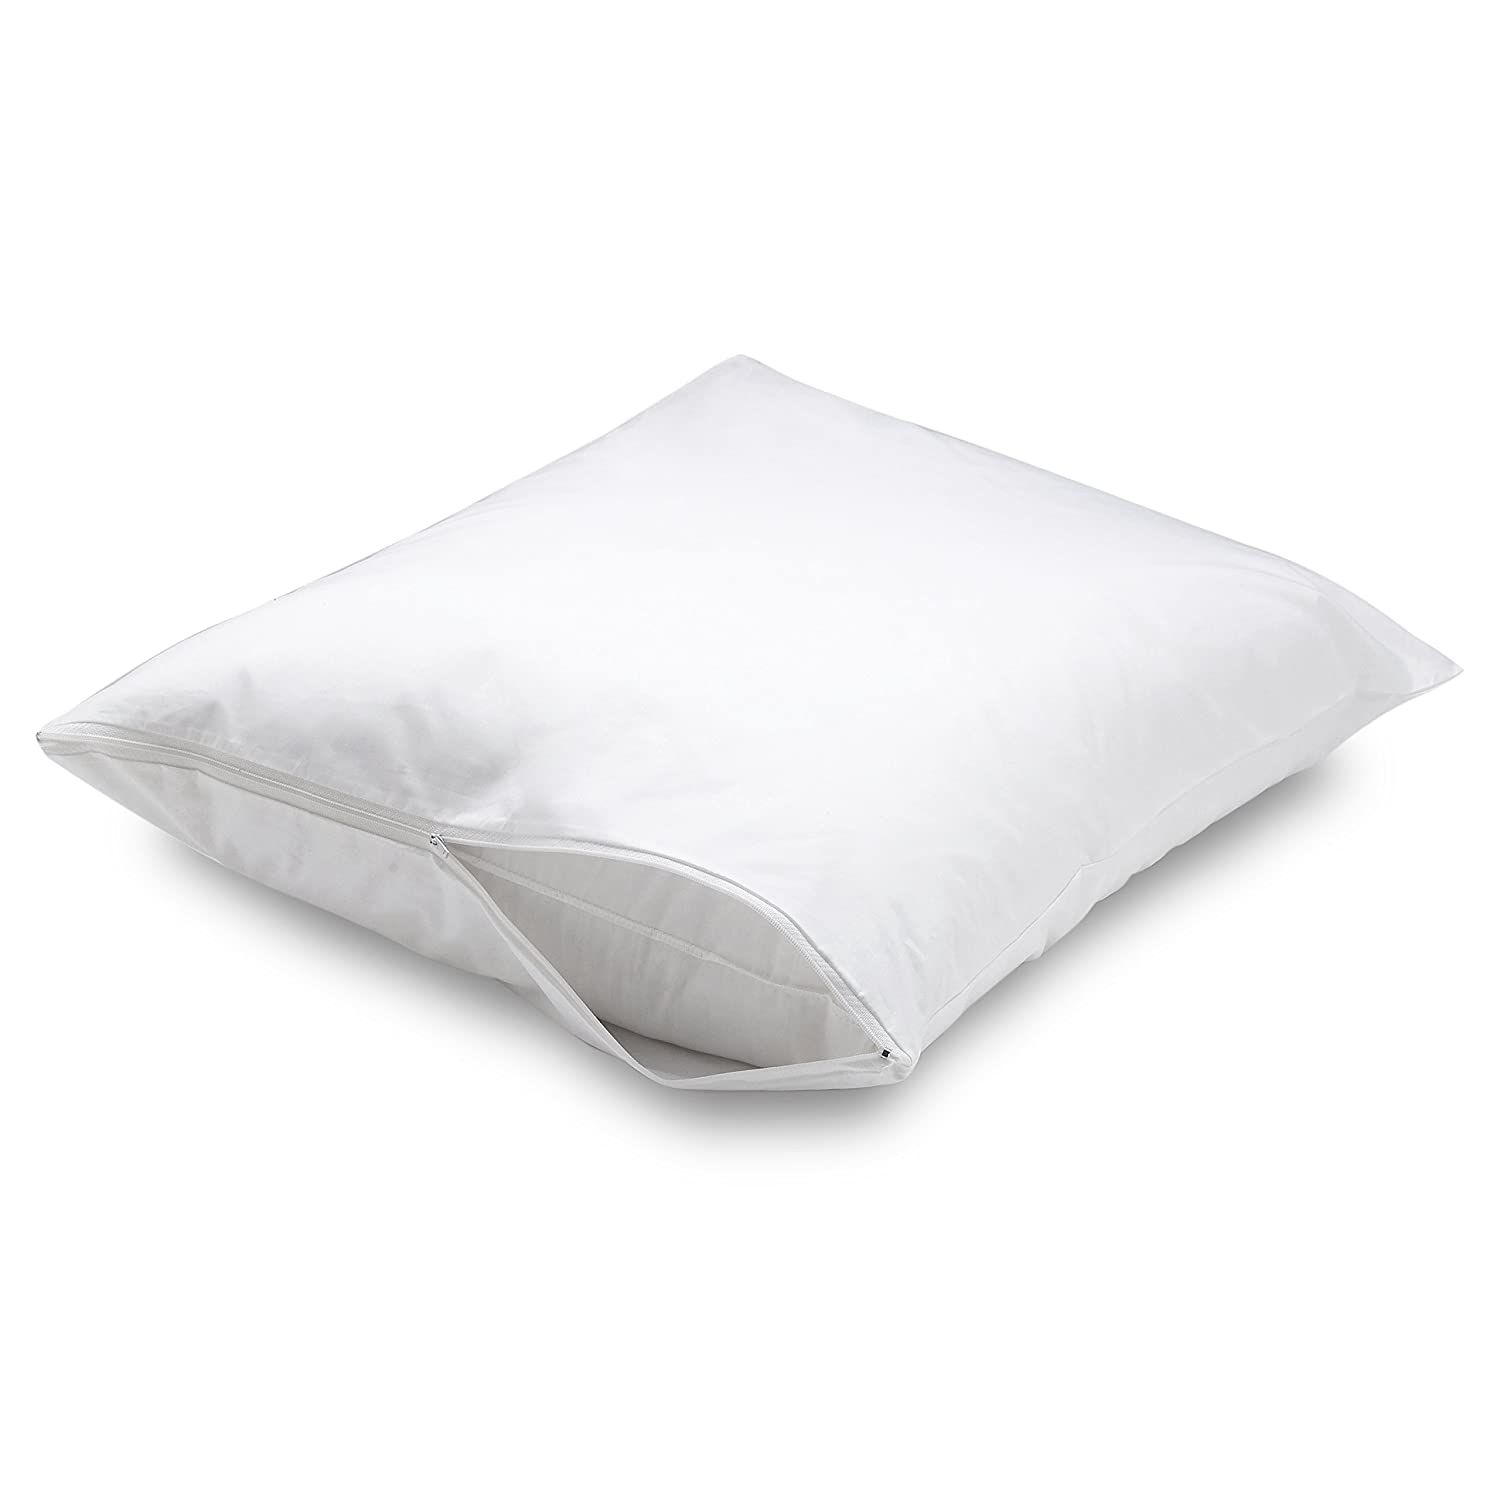 Aller-Ease Water Proof Allergy Protection Zippered Pillow Protector American Textile Company 3036L